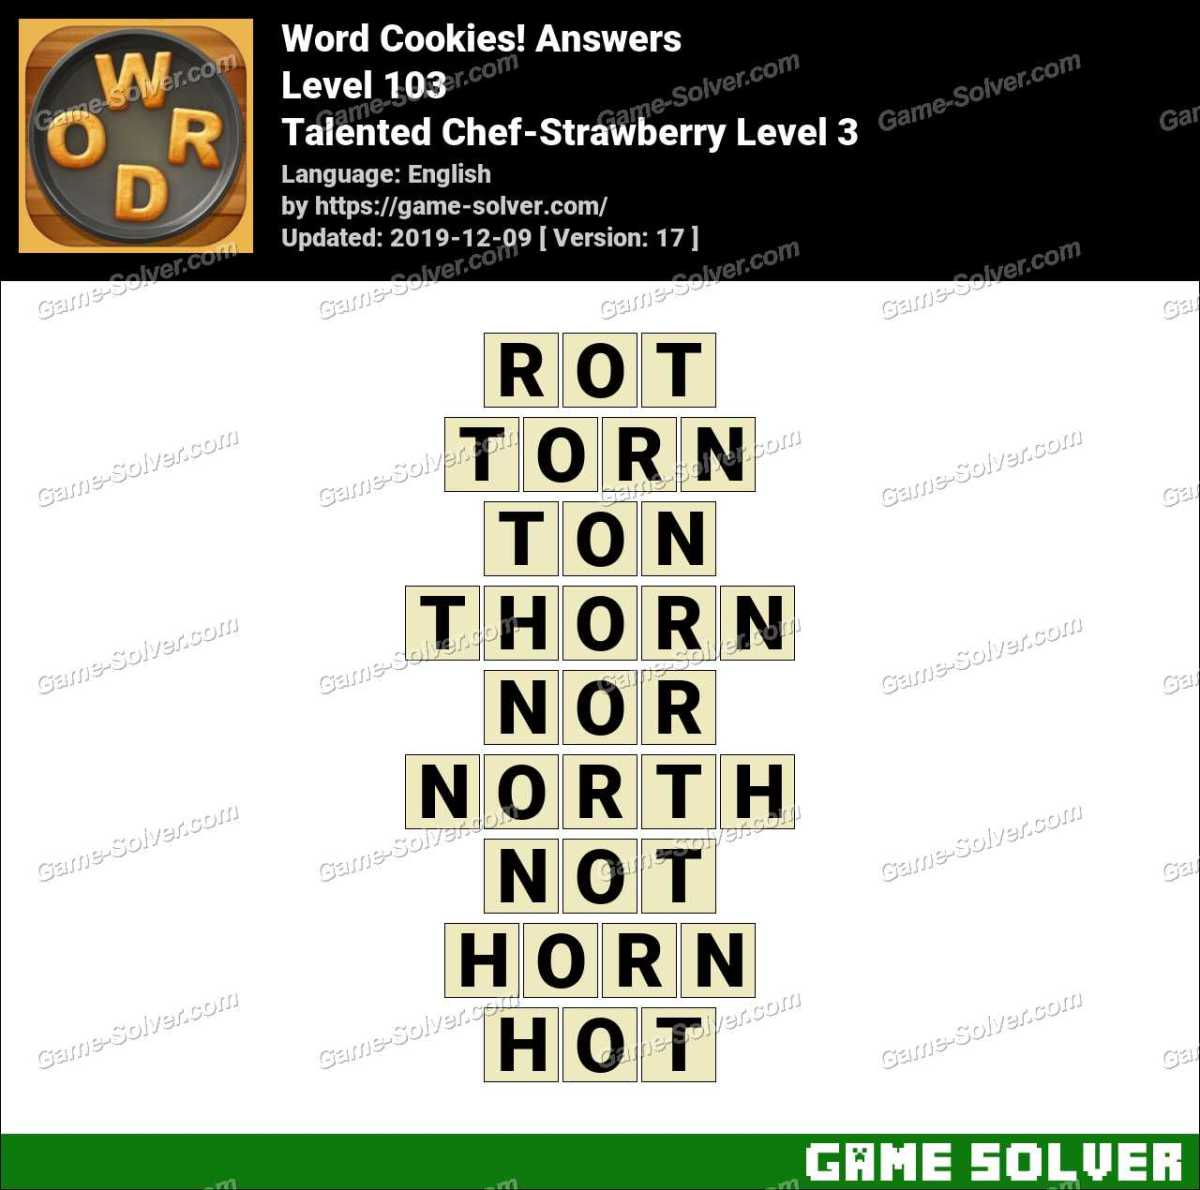 Word Cookies Talented Chef-Strawberry Level 3 Answers